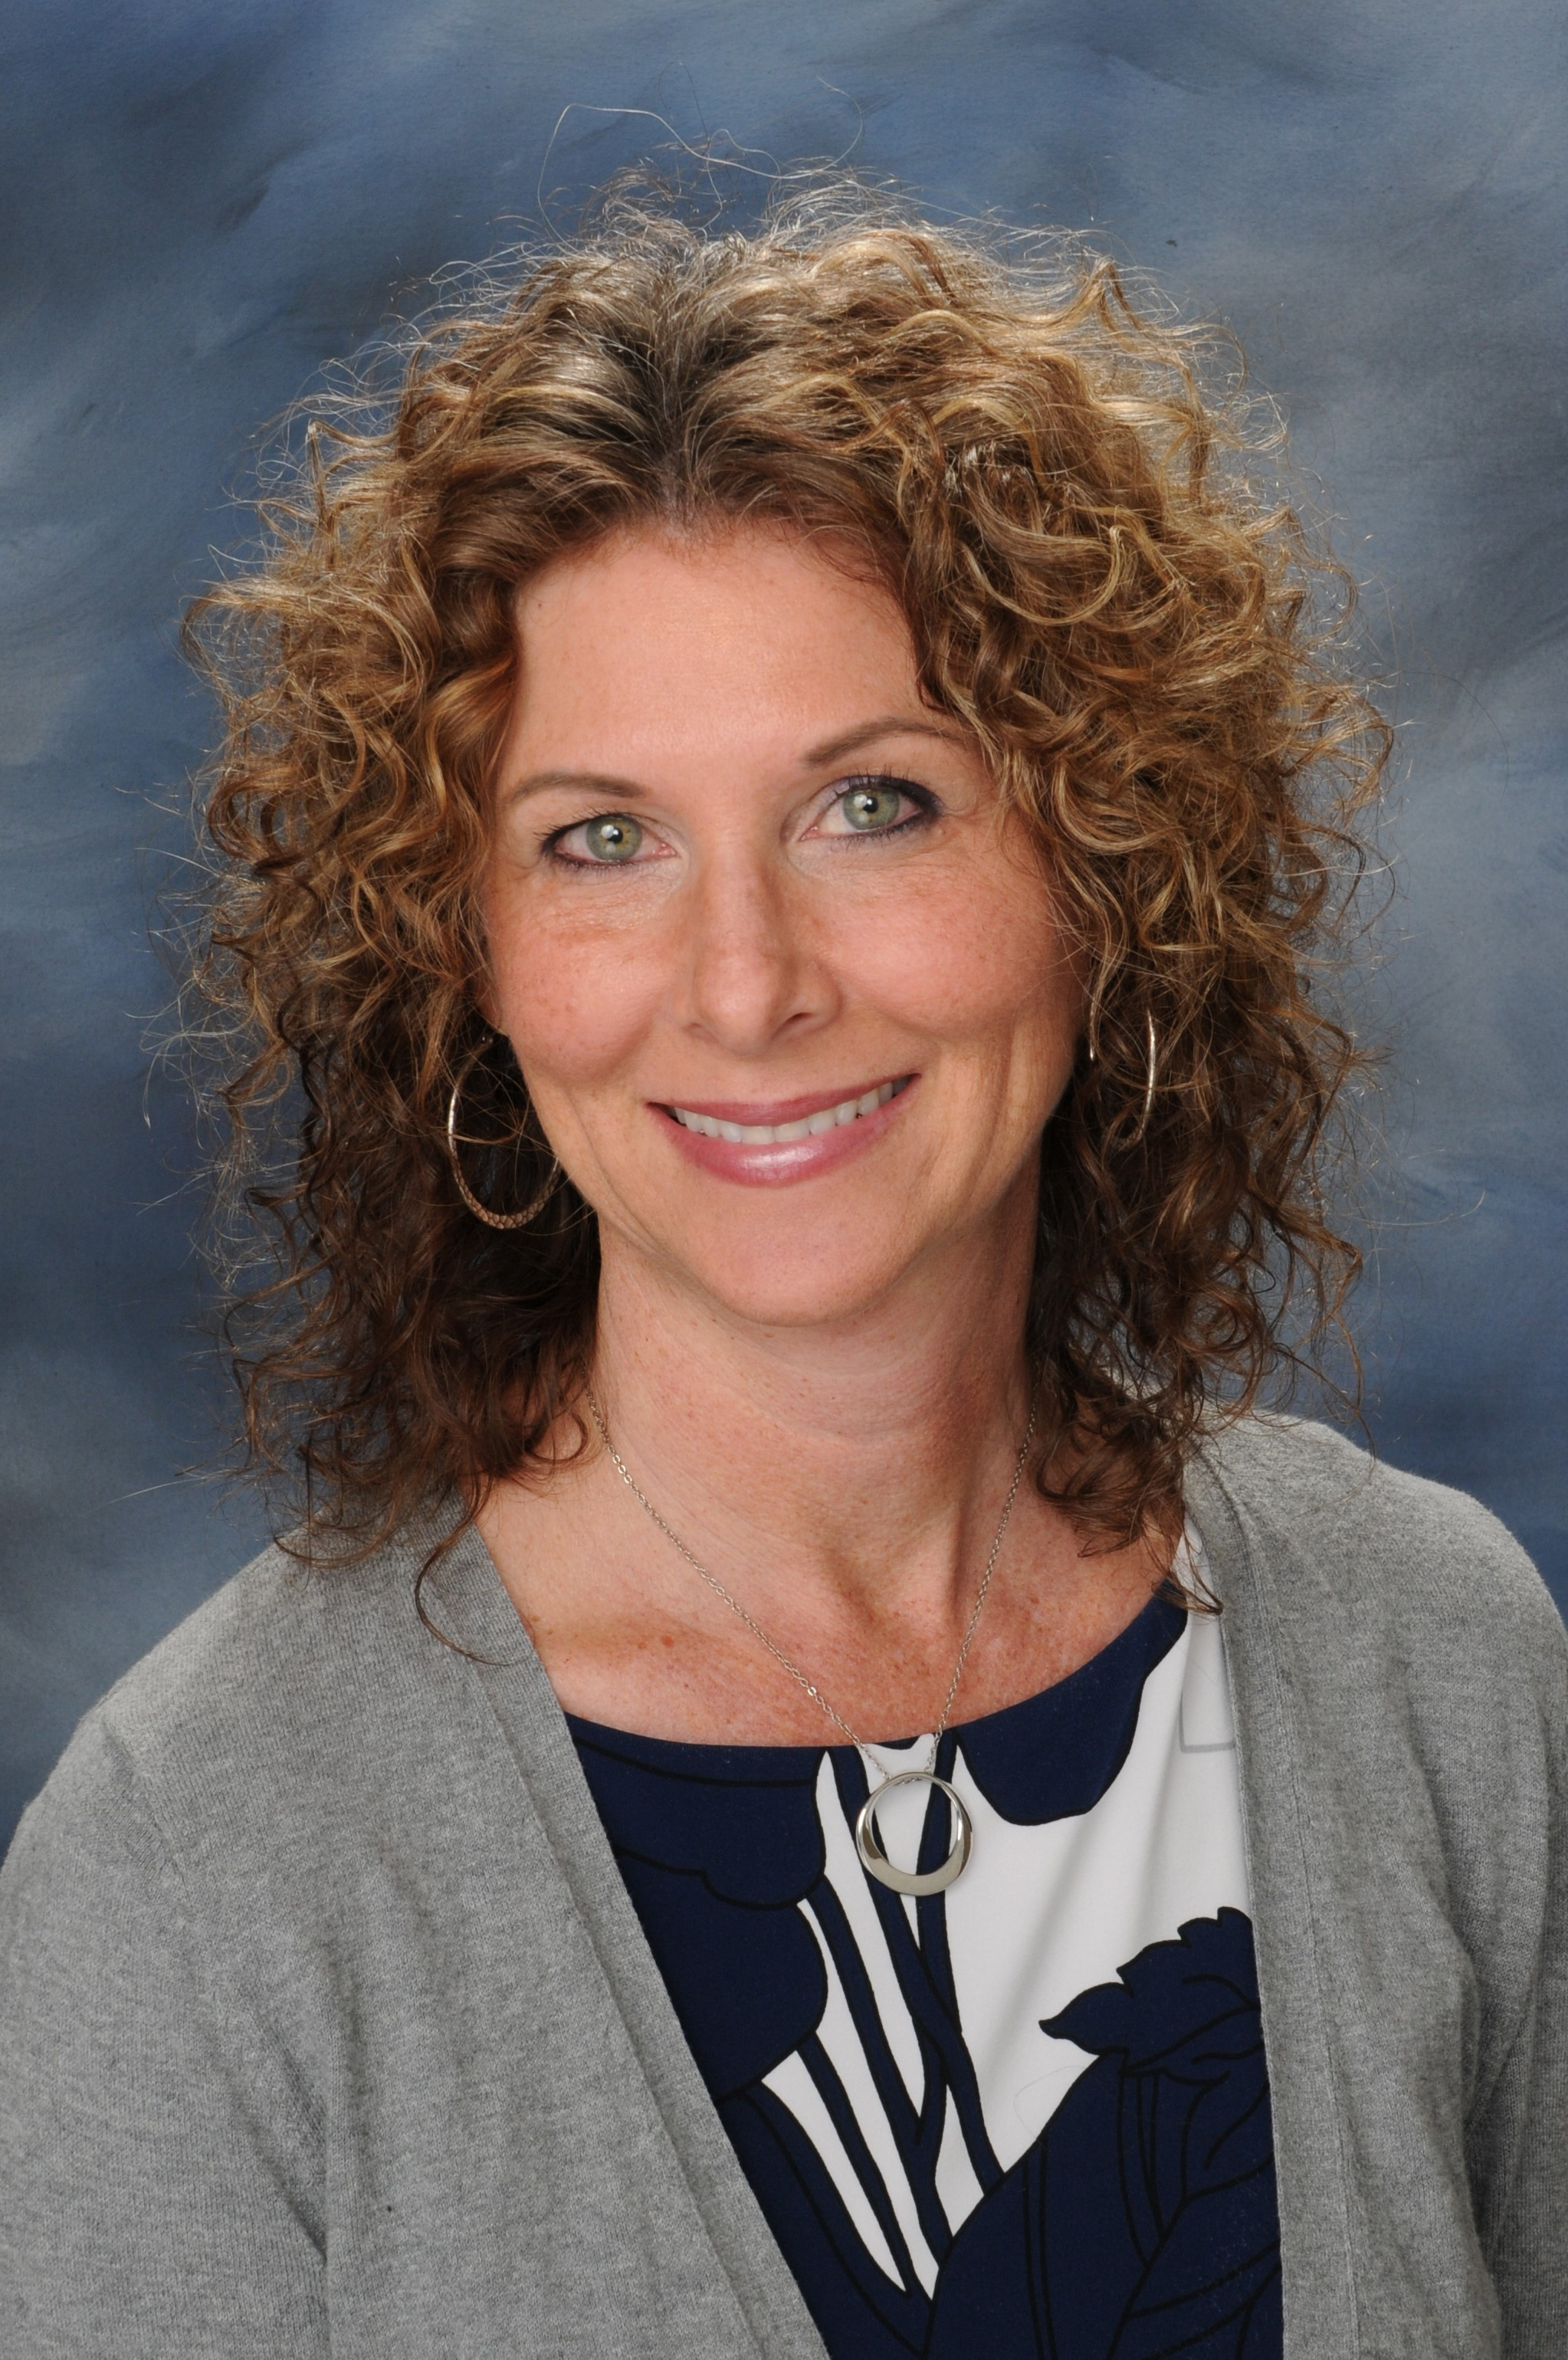 Cave Creek Unified School District Is Pleased To Announce That Cristina Ladas, World Language Coordinator, Has Been Added To The American Council On The Teaching Of Foreign Languages' Board Of Directors For K-12 Schools. Photo Courtesy Cave Creek Unified School District